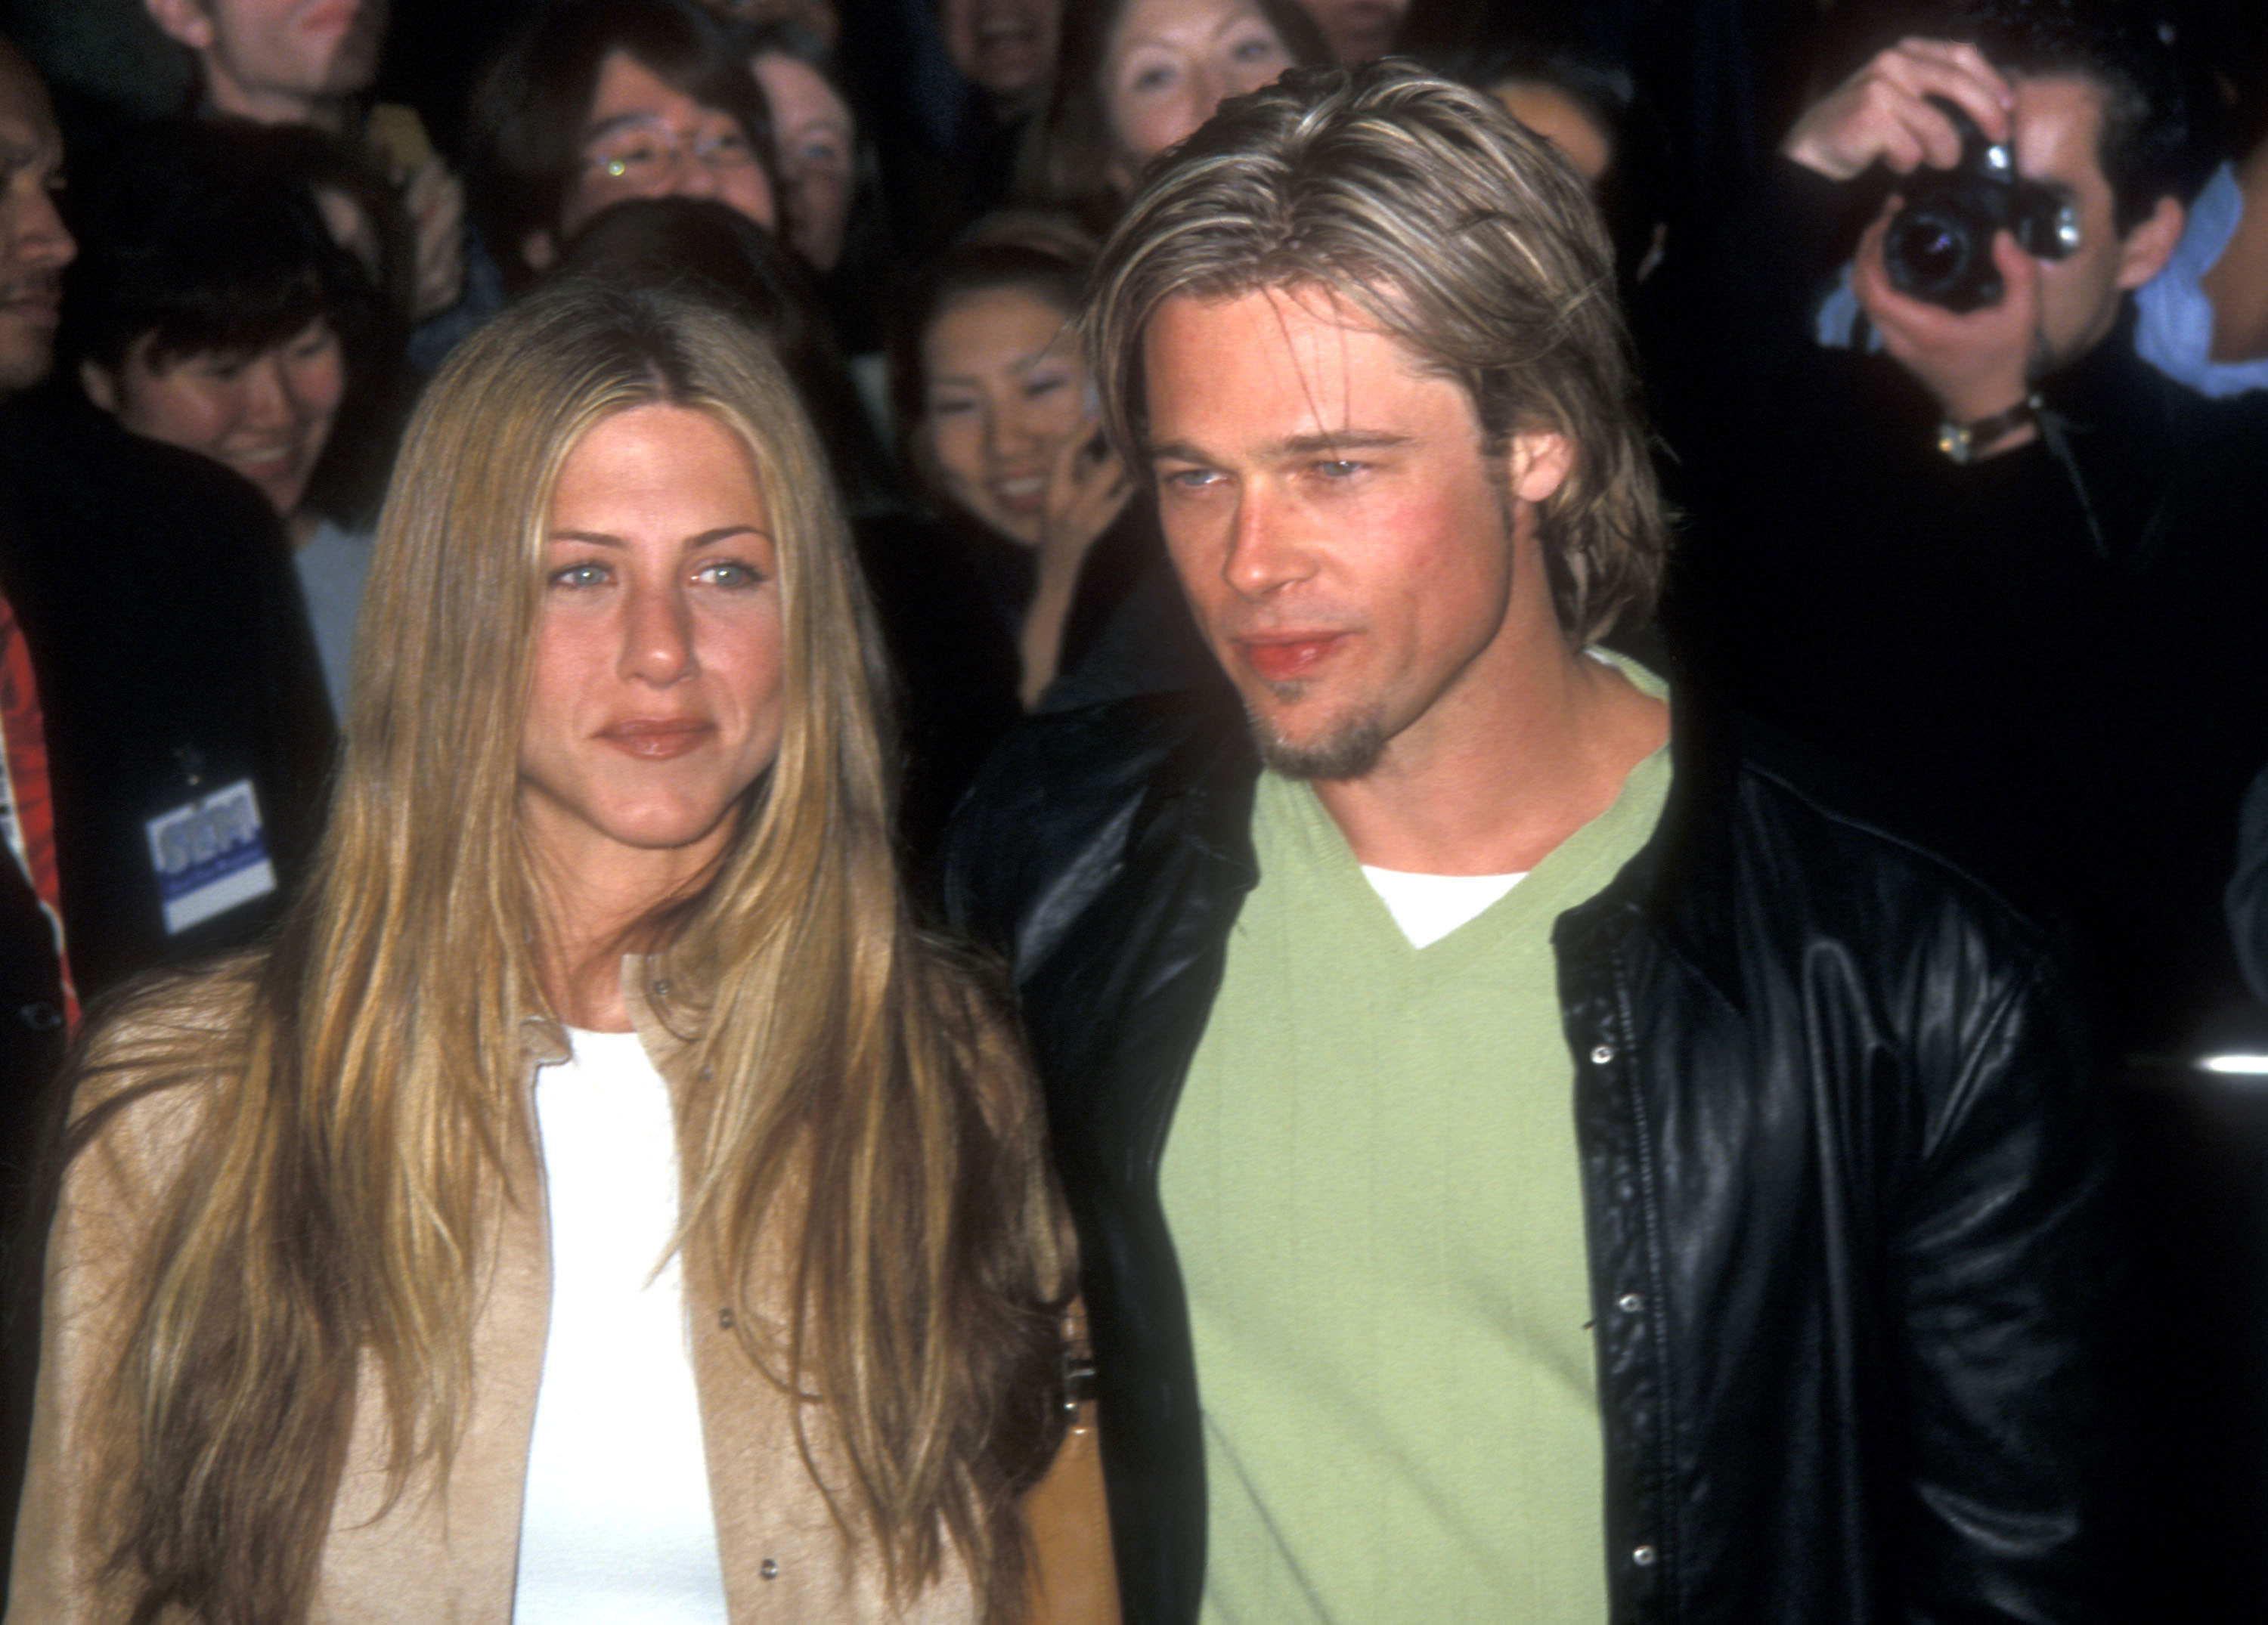 Brad Pitt and Jennifer Aniston Relationship Timeline - Hollywood's leading man and the sweetheart of television were set up by their agents in 1998. From the get-go, they felt like they had something special.